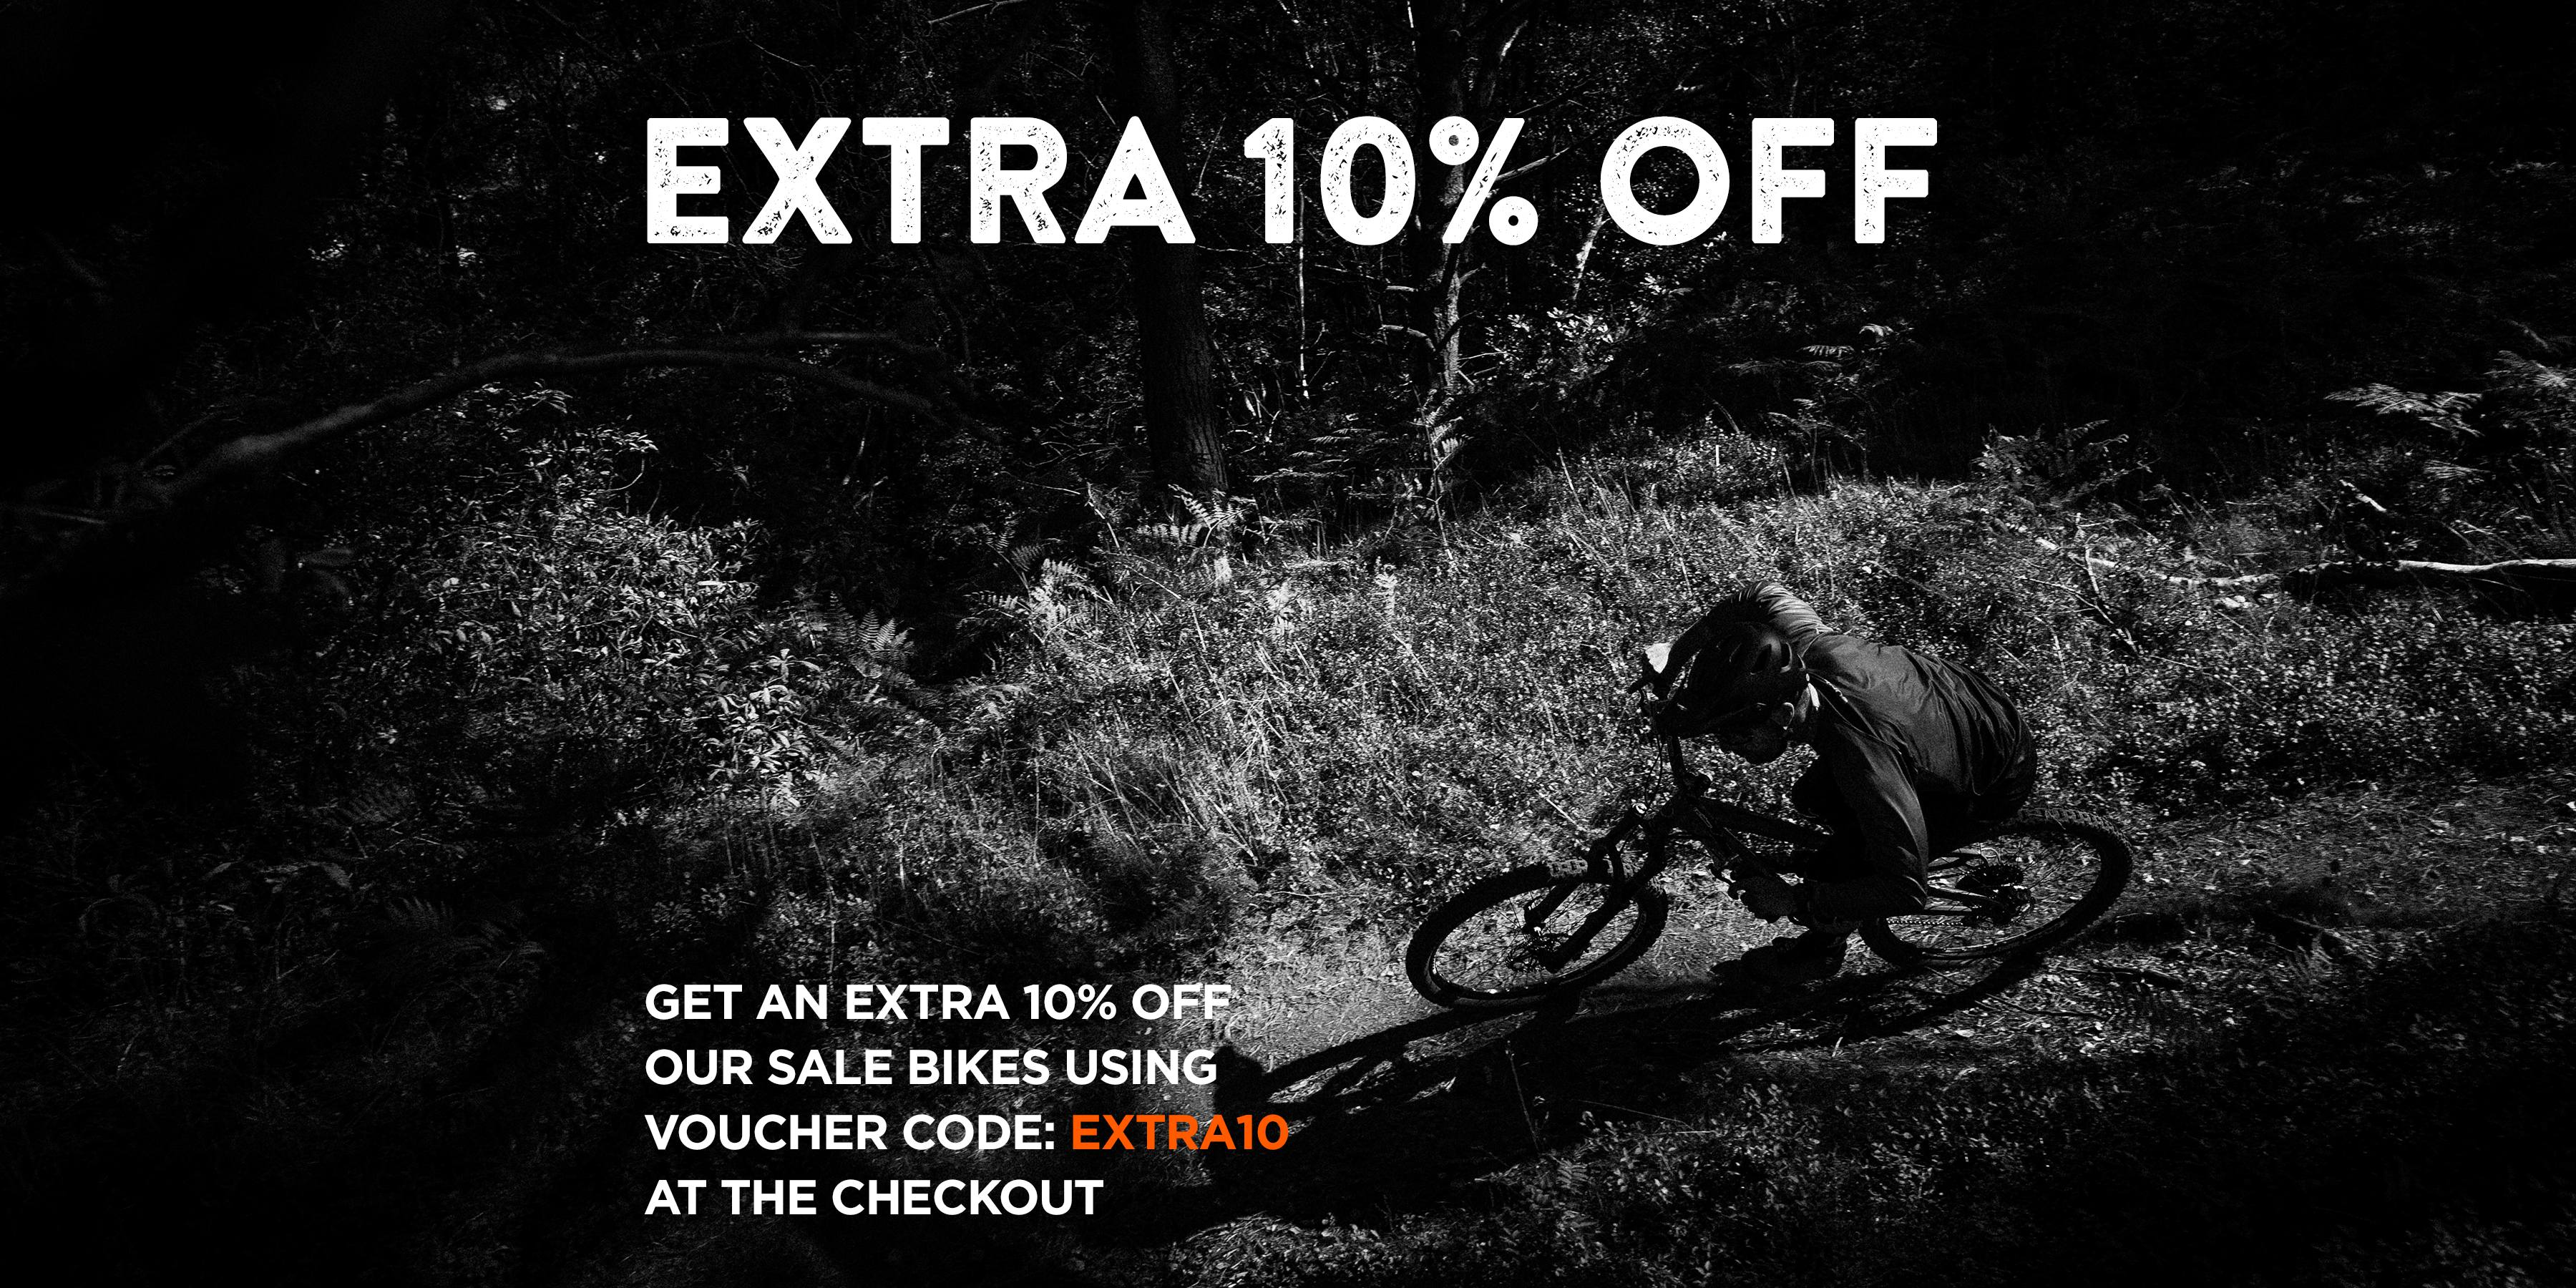 Extra 10% off on all bikes on offer